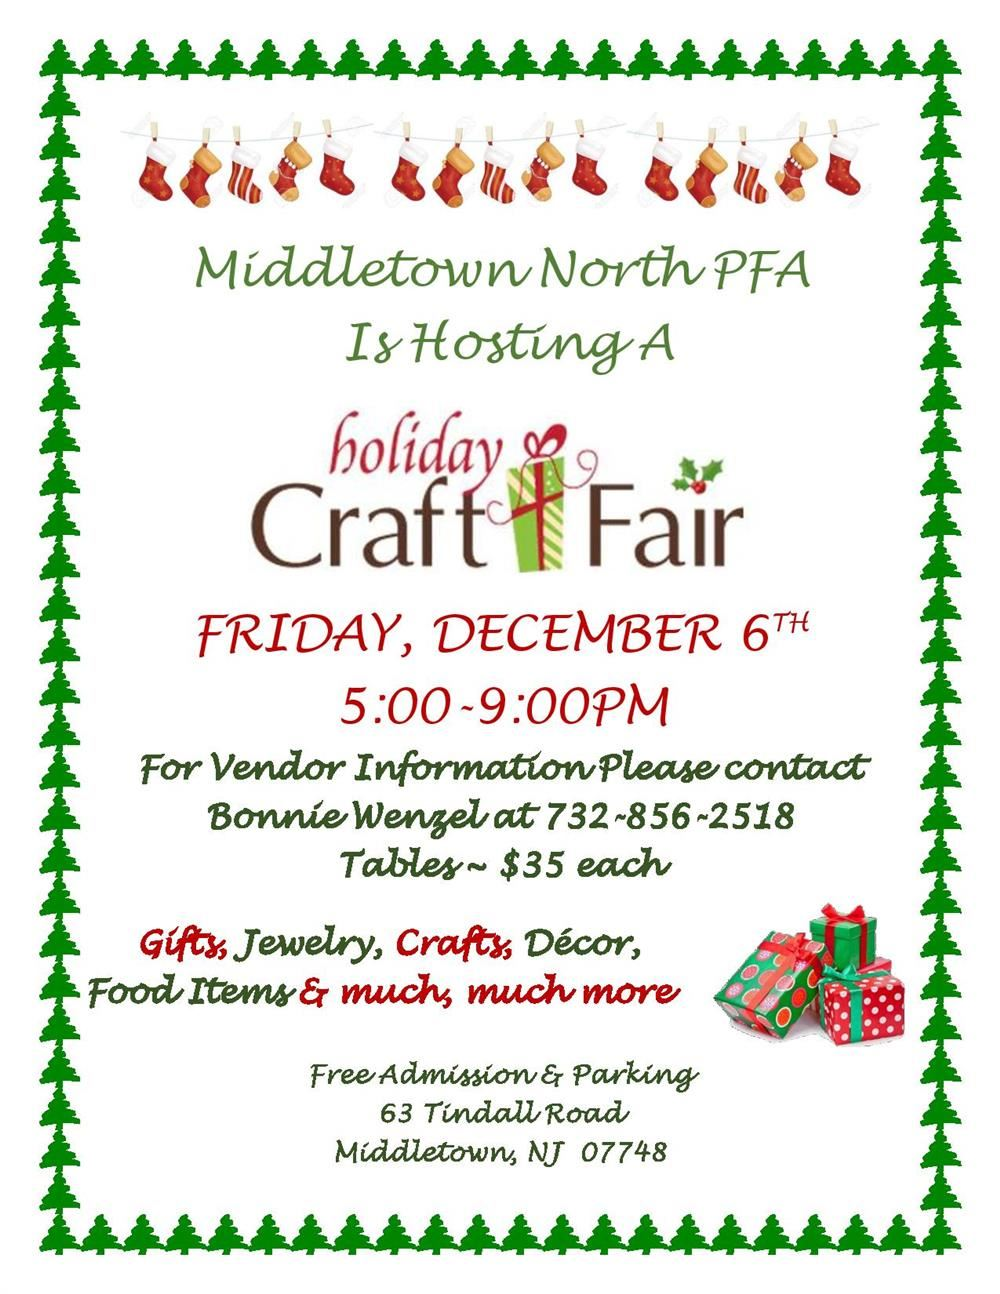 HSN PFA Holiday Craft Fair Information page thumbnail image